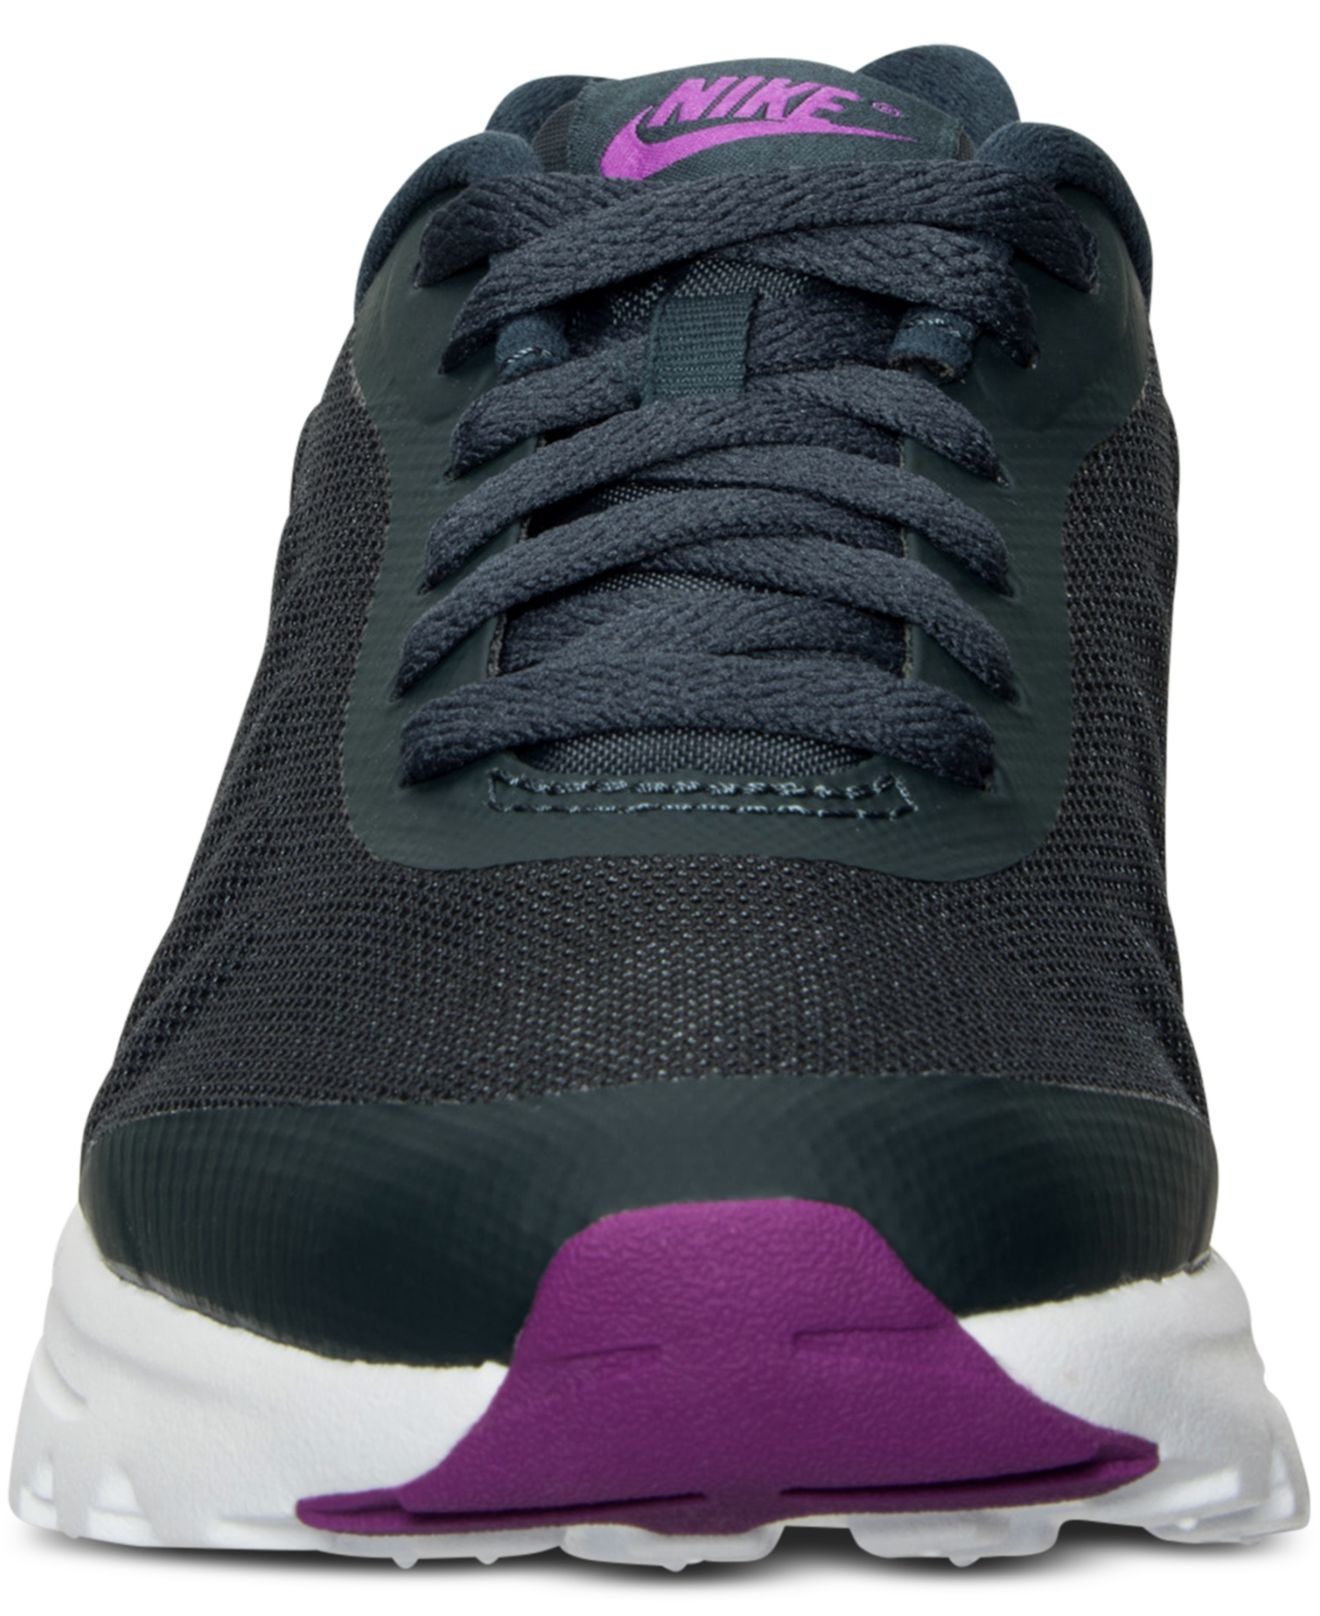 huge selection of 4578f d2839 ... invigor womens sneakers seaweed purple 537 16488 7f15d f656a  where can  i buy gallery. previously sold at macys womens nike air max womens brown